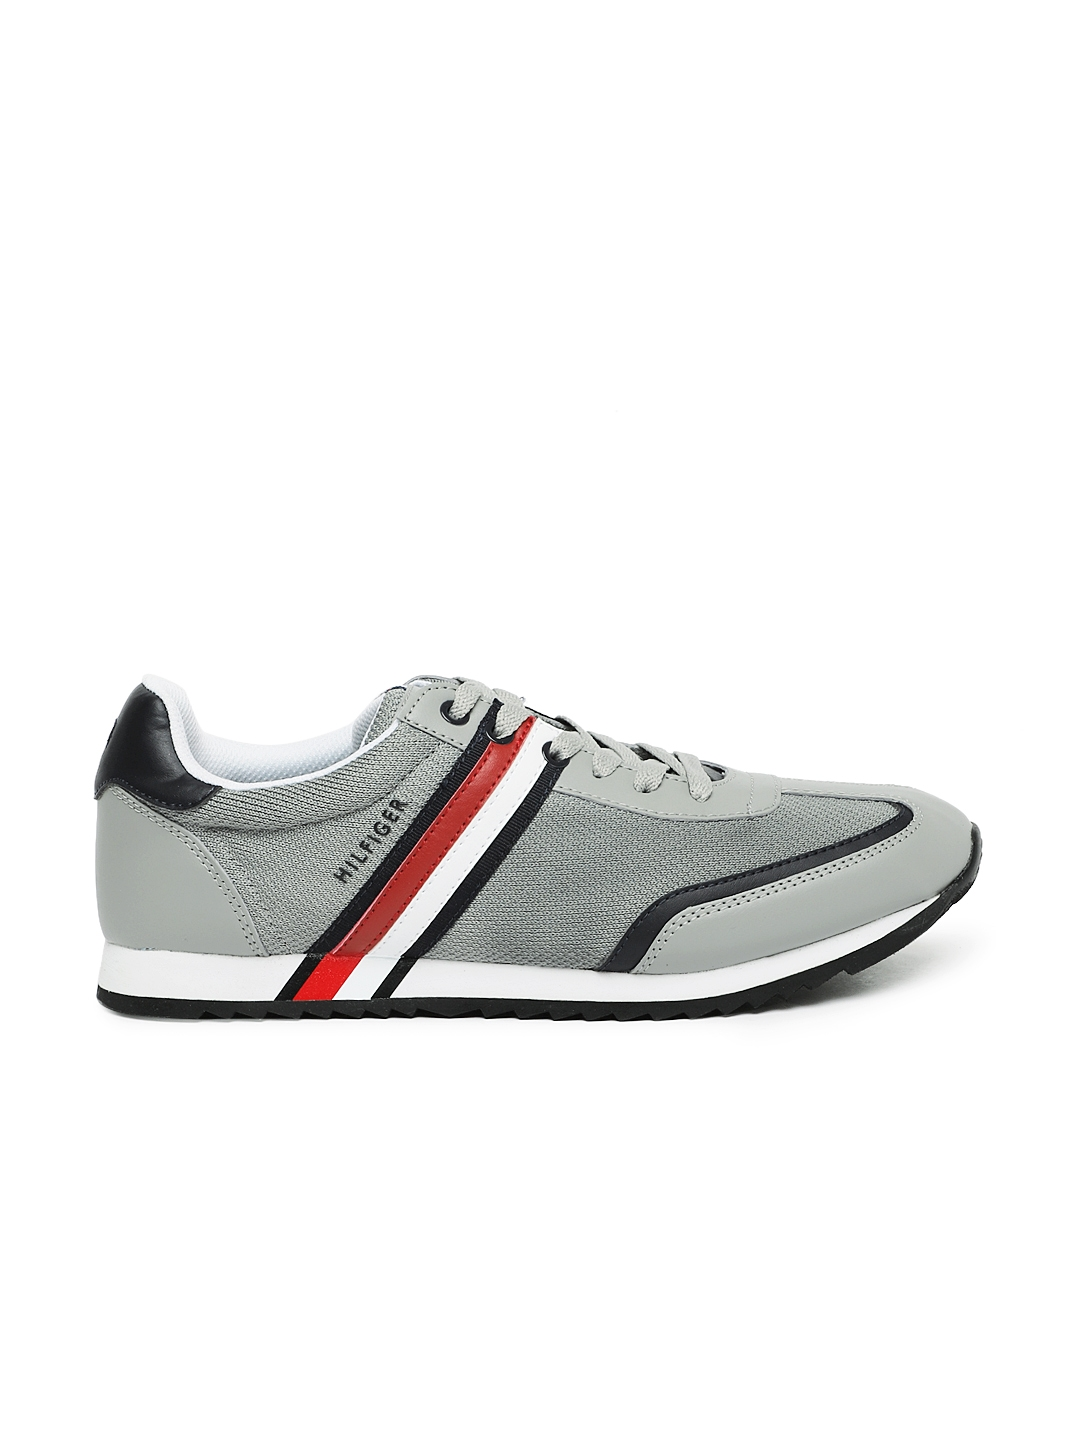 8baba3a4e Buy Tommy Hilfiger Men Grey Sneakers - Casual Shoes for Men 5415596 ...